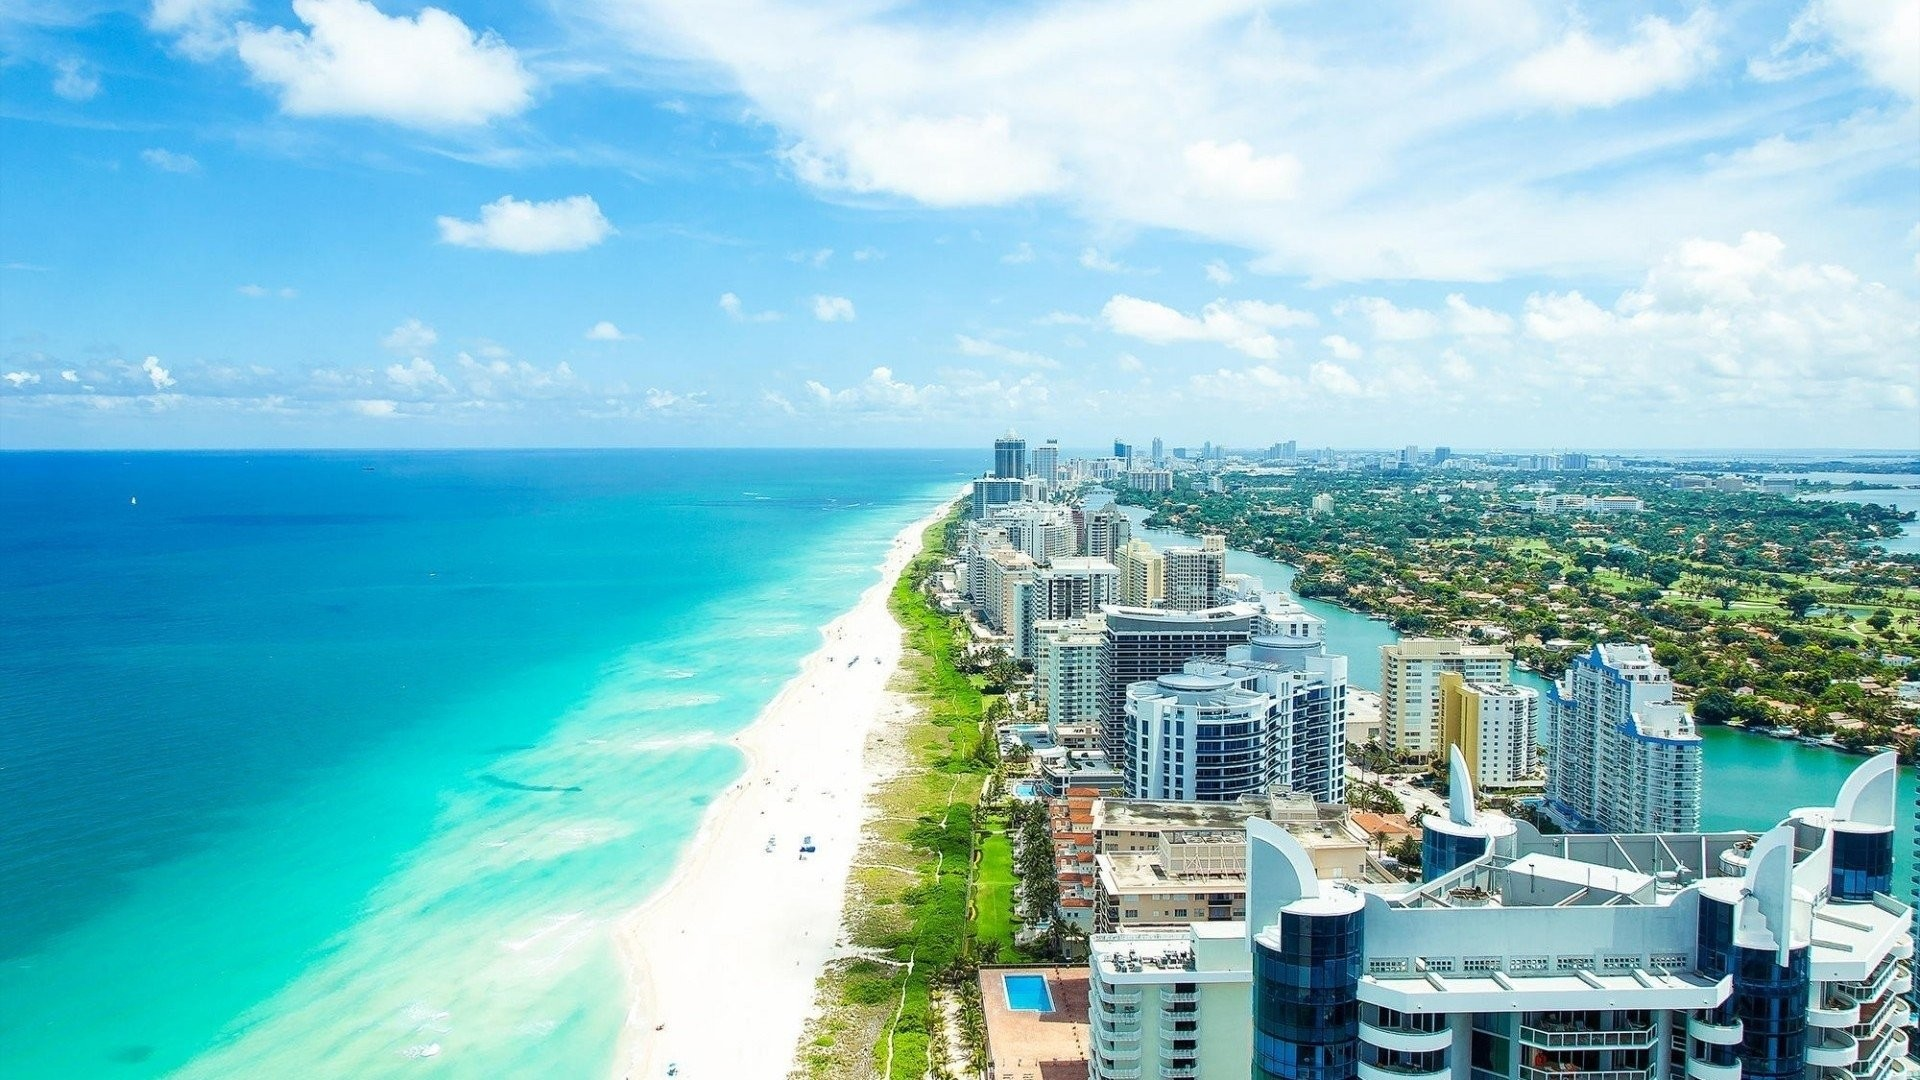 65 Miami Beach Wallpapers on WallpaperPlay 1920x1080